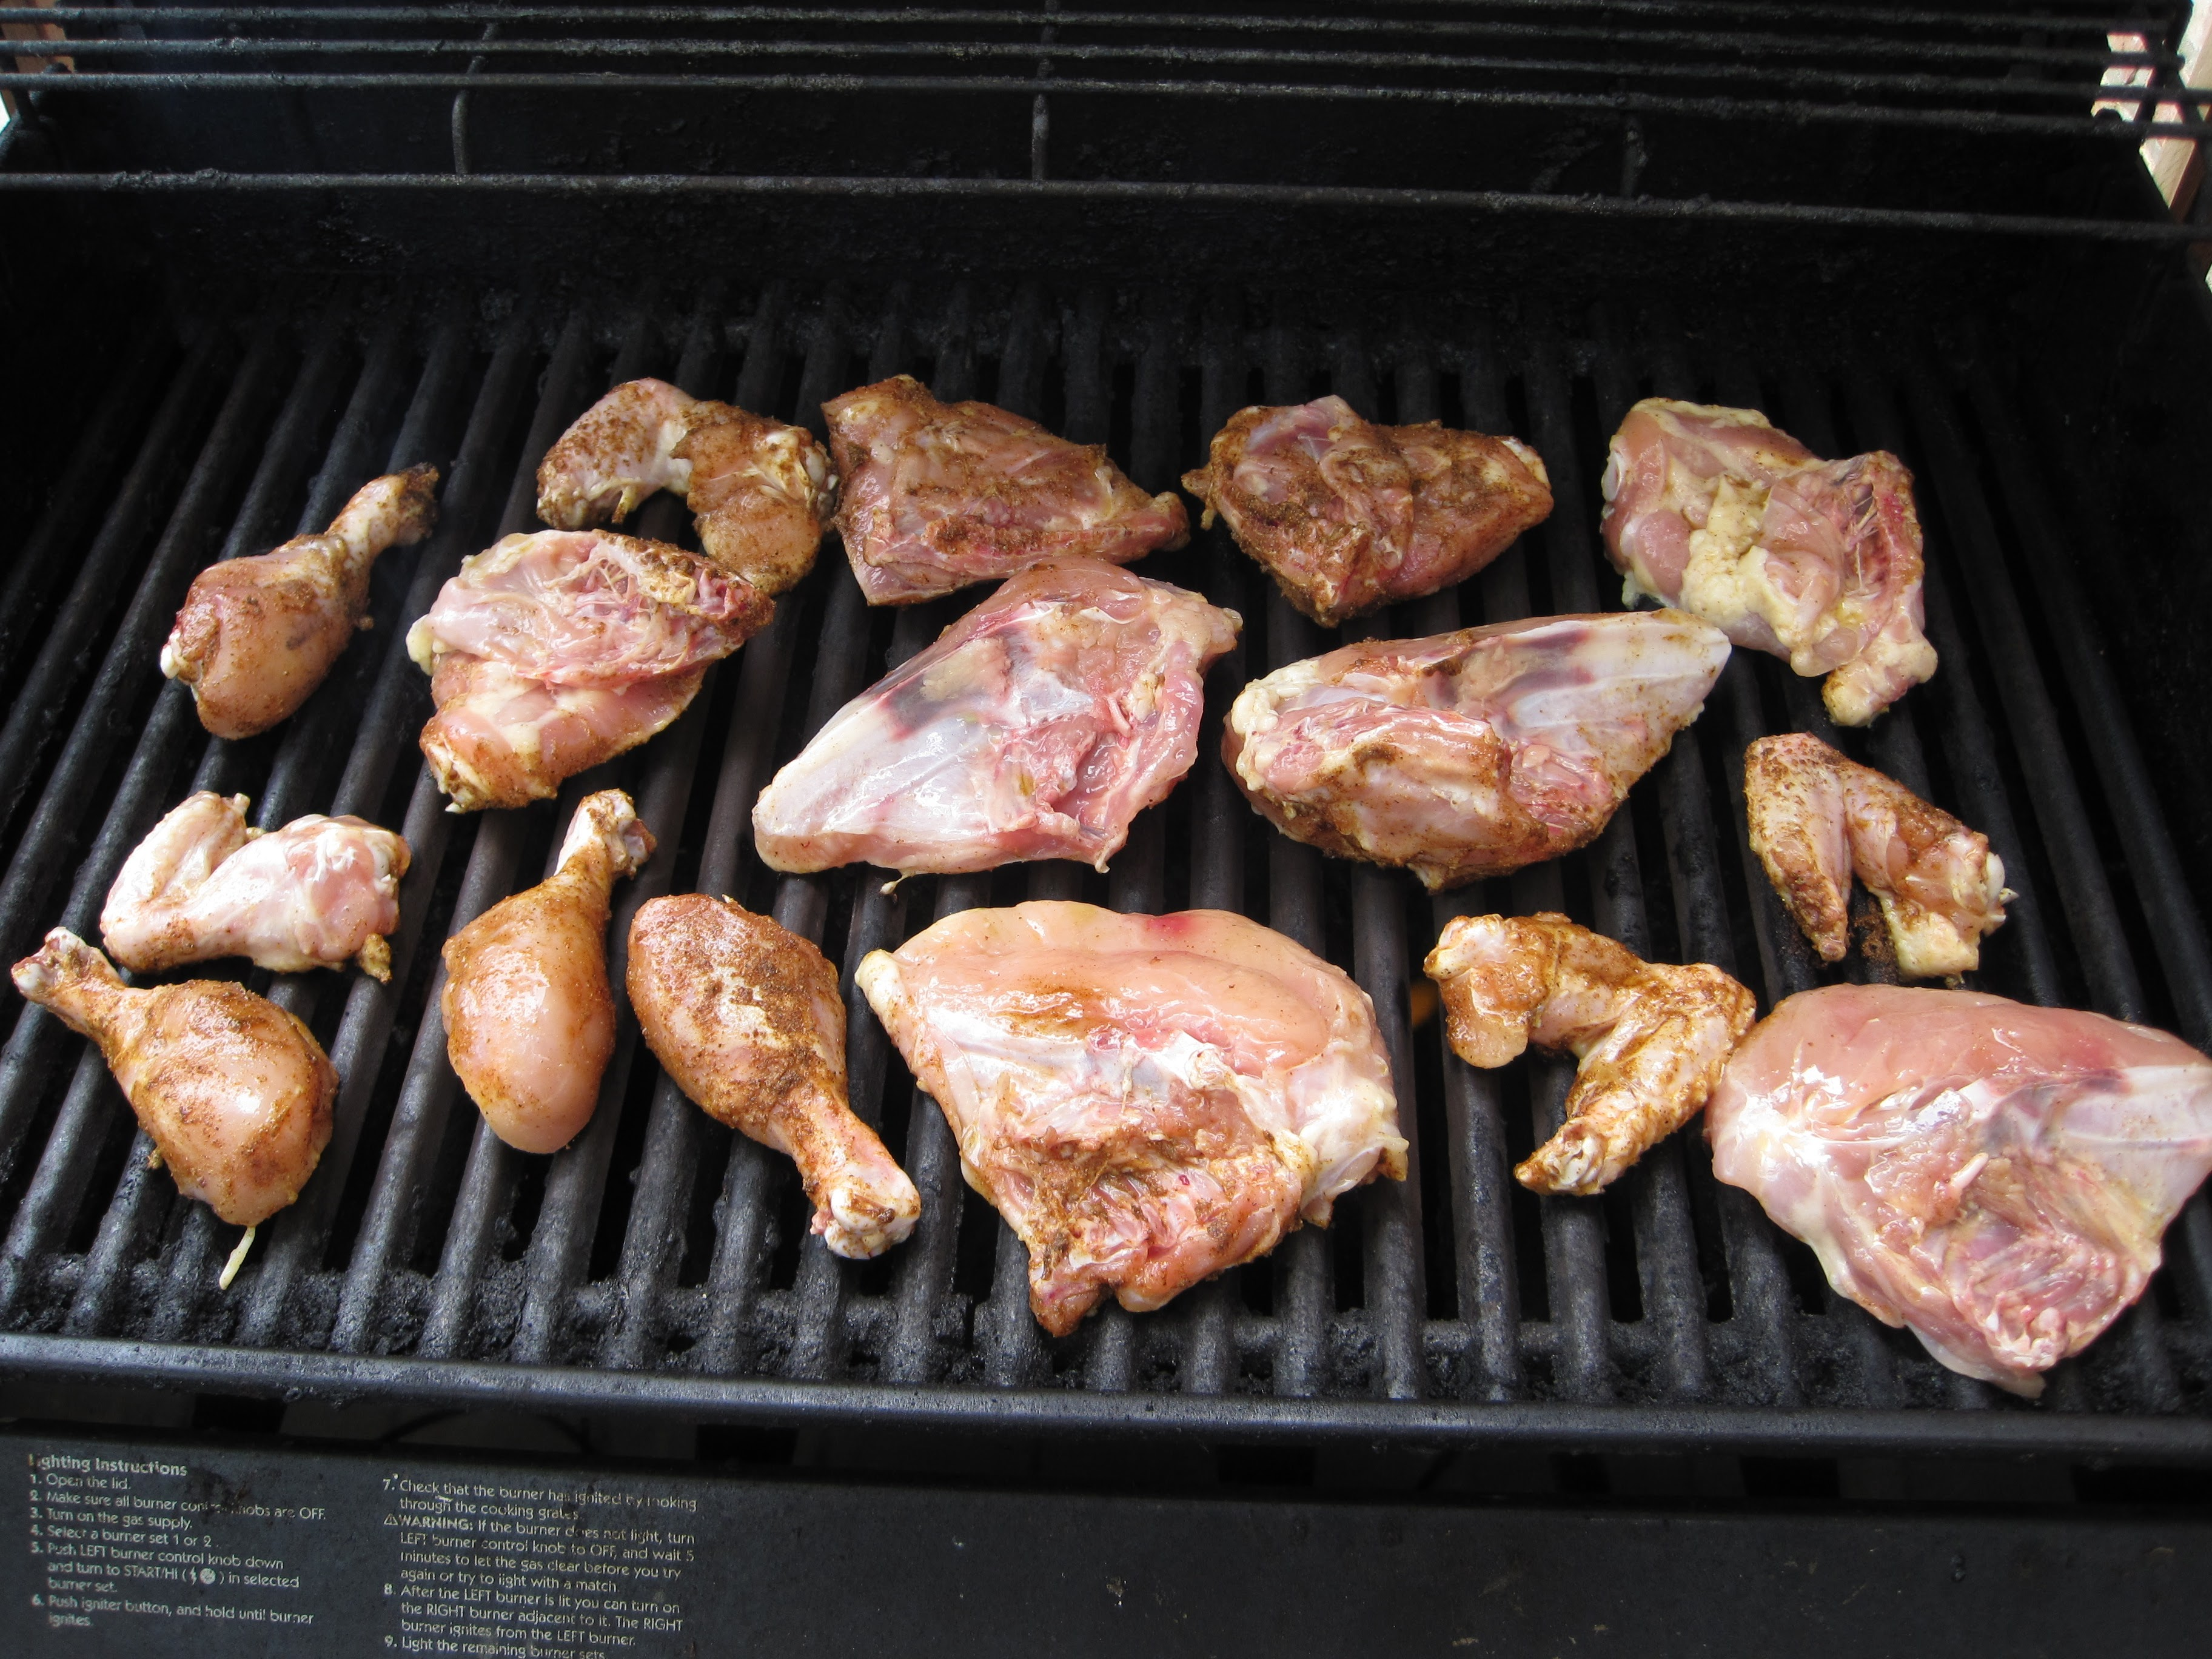 Place the chicken on the grill with some space between the pieces.